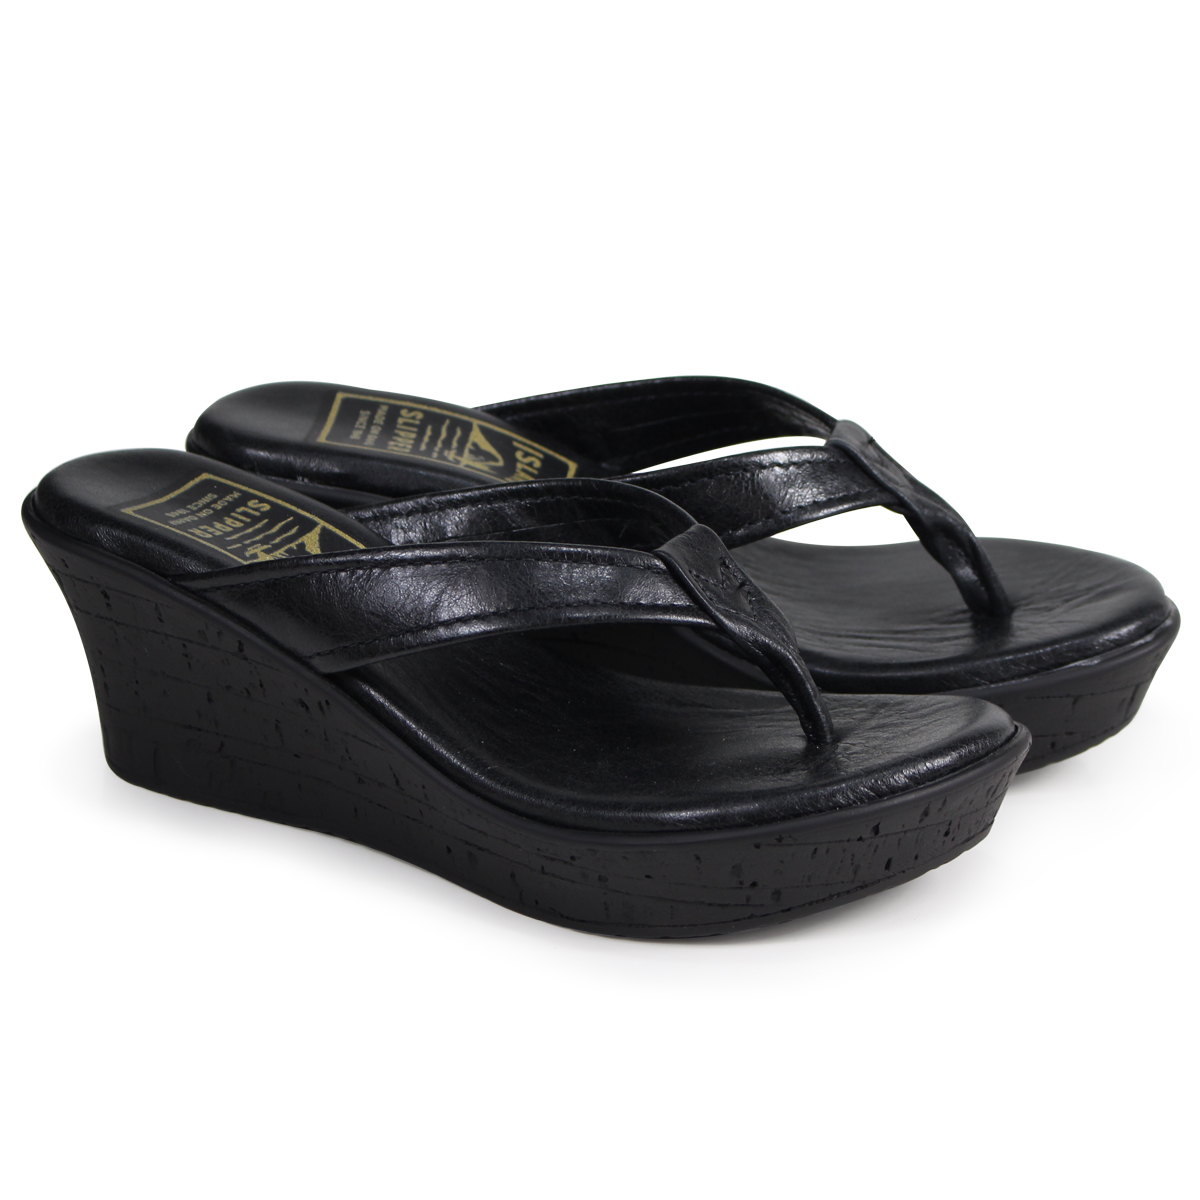 af3294776 ISLAND SLIPPER ALL LEATHER THONG island slippers Lady's sandals wedge  sandals suede black BP910 [4 ...